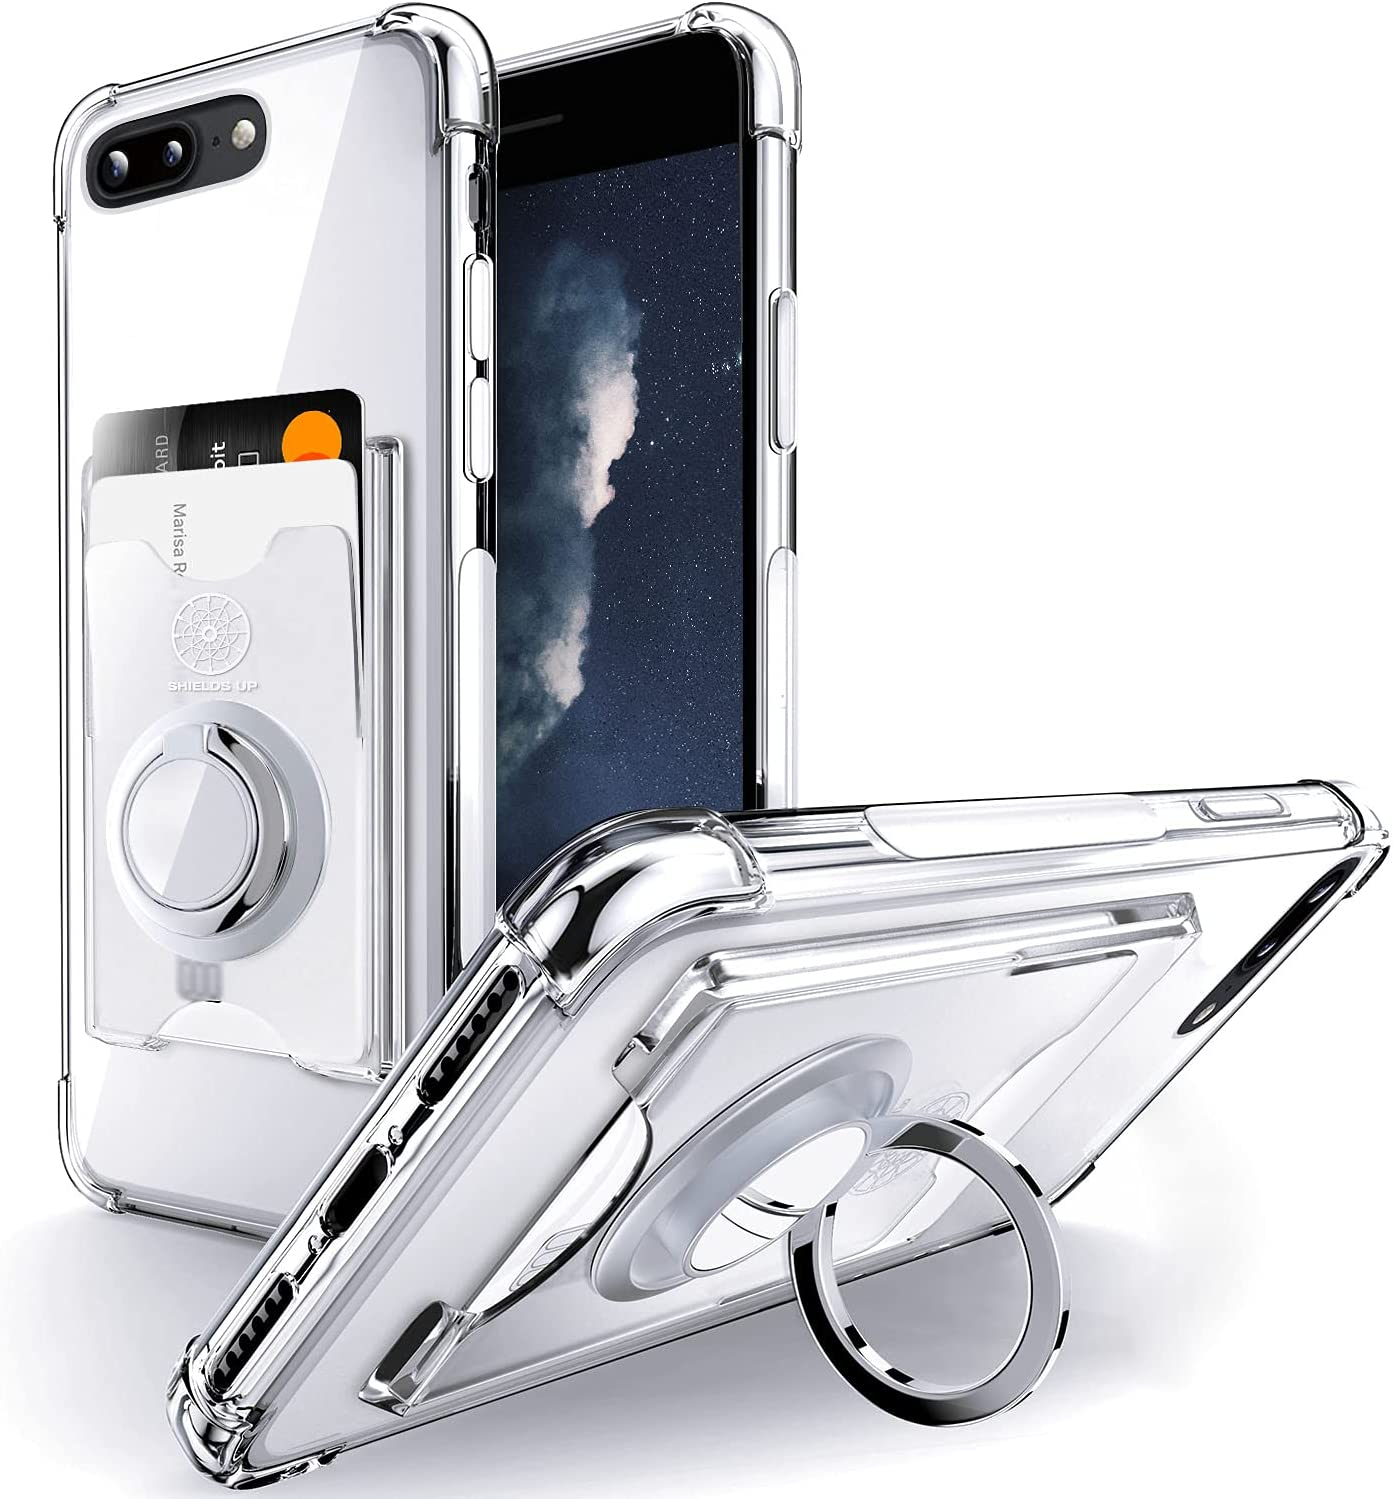 Shields Up Designed for iPhone 8 Plus Case, iPhone 7 Plus Case, Minimalist Wallet Case with Card Holder and Ring Kickstand/Stand, Slim Protective Shockproof Cover for Apple iPhone 8Plus/7Plus - Clear